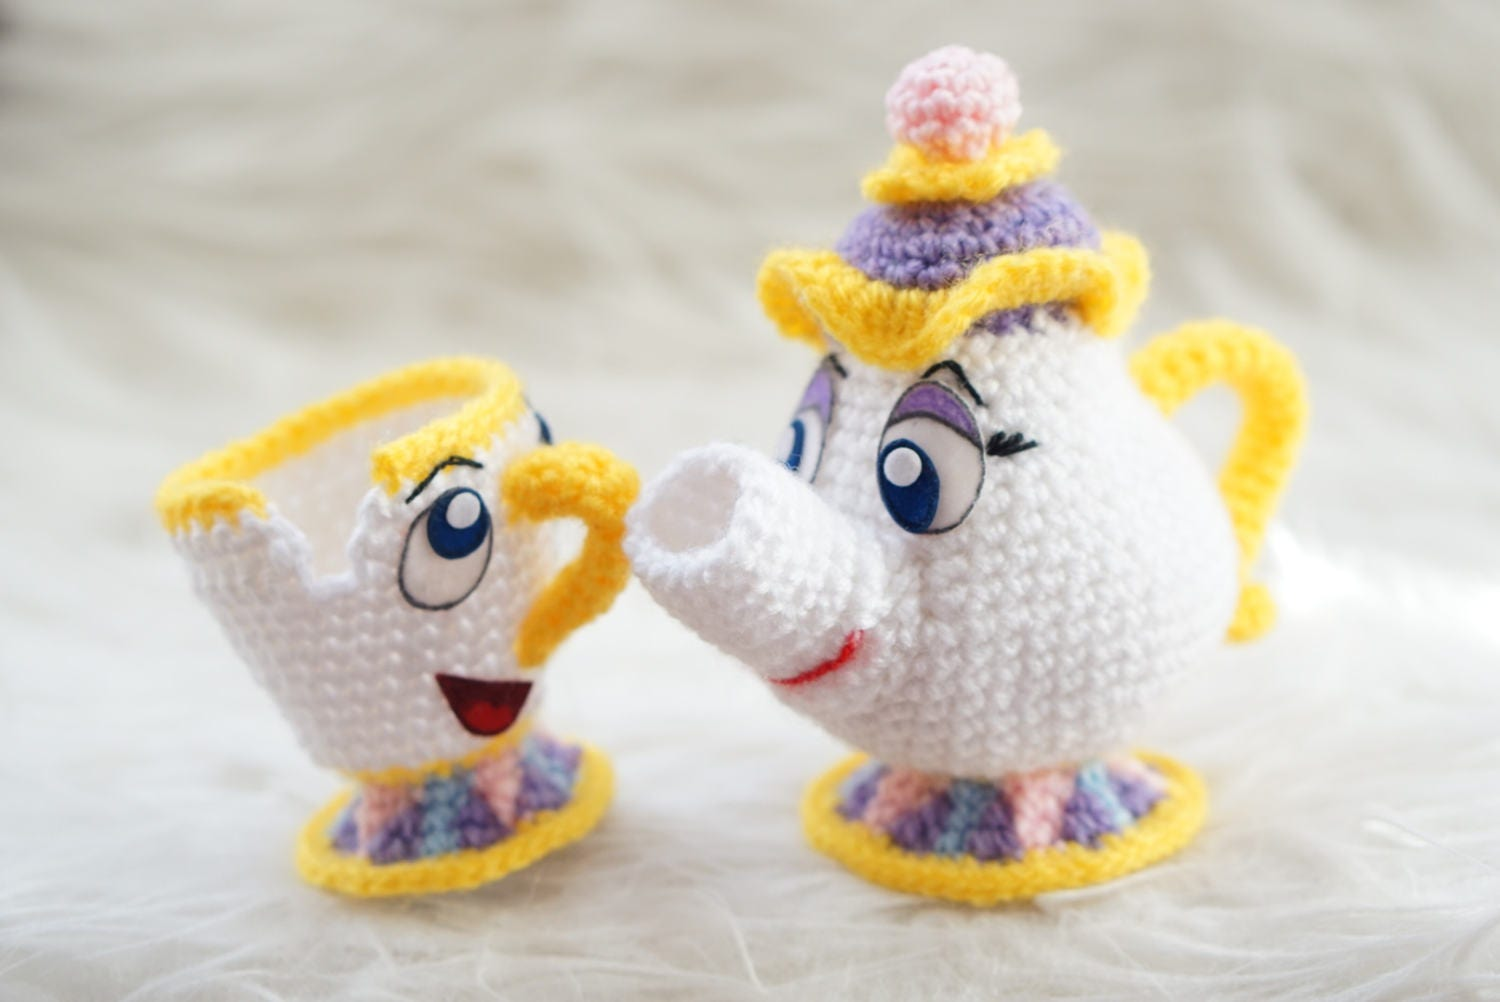 Amigurumi Patterns Disney : Pack in mrs potts and chip beauty and the beast amigurumi